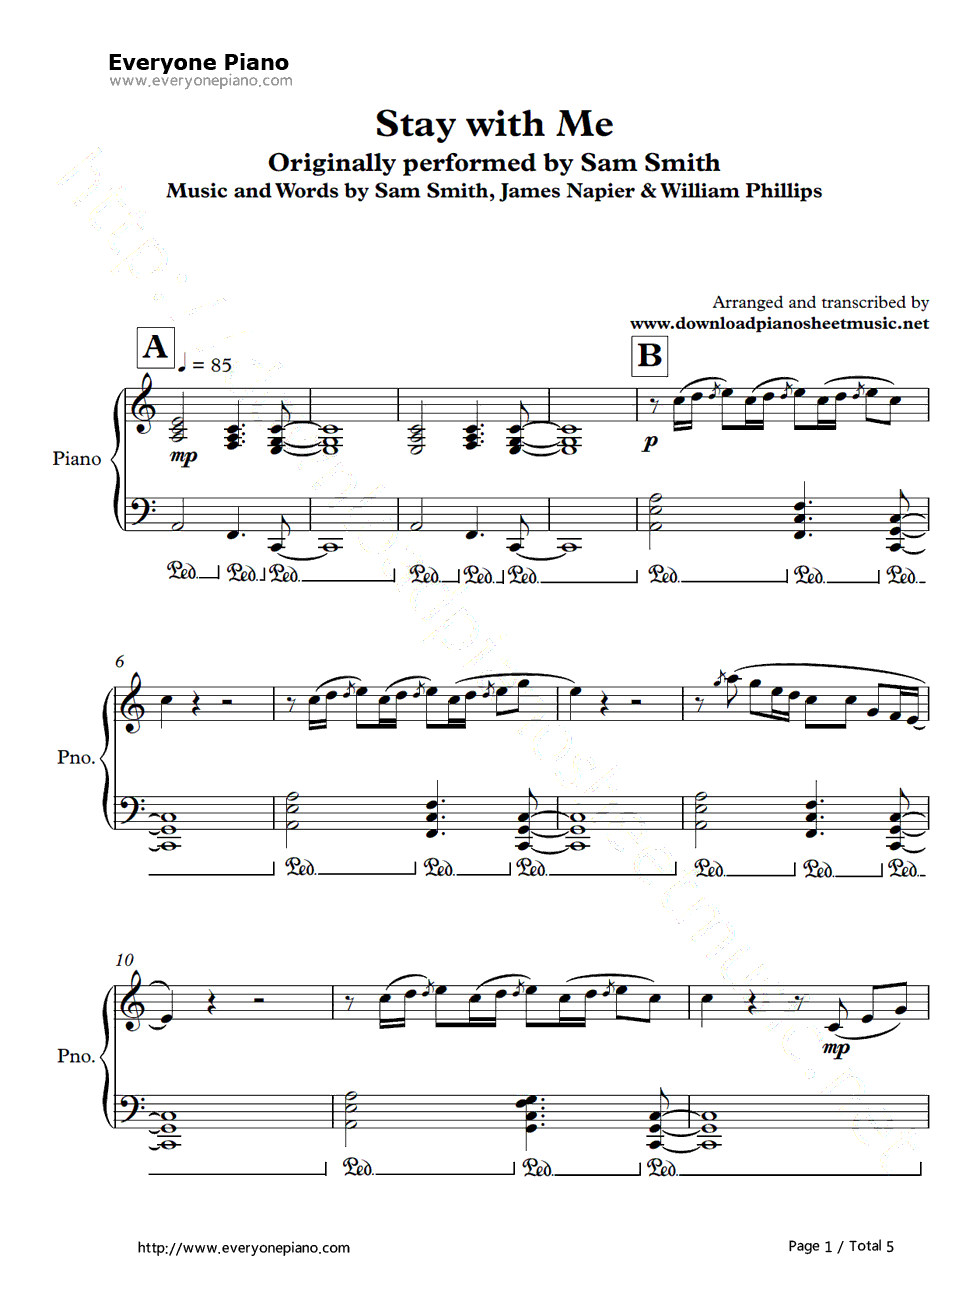 Free stay with me full version sam smith sheet music preview 1 free stay with me piano sheet music is provided for you stay with me is a song performed by sam smith who is a british singer songwriter hexwebz Choice Image